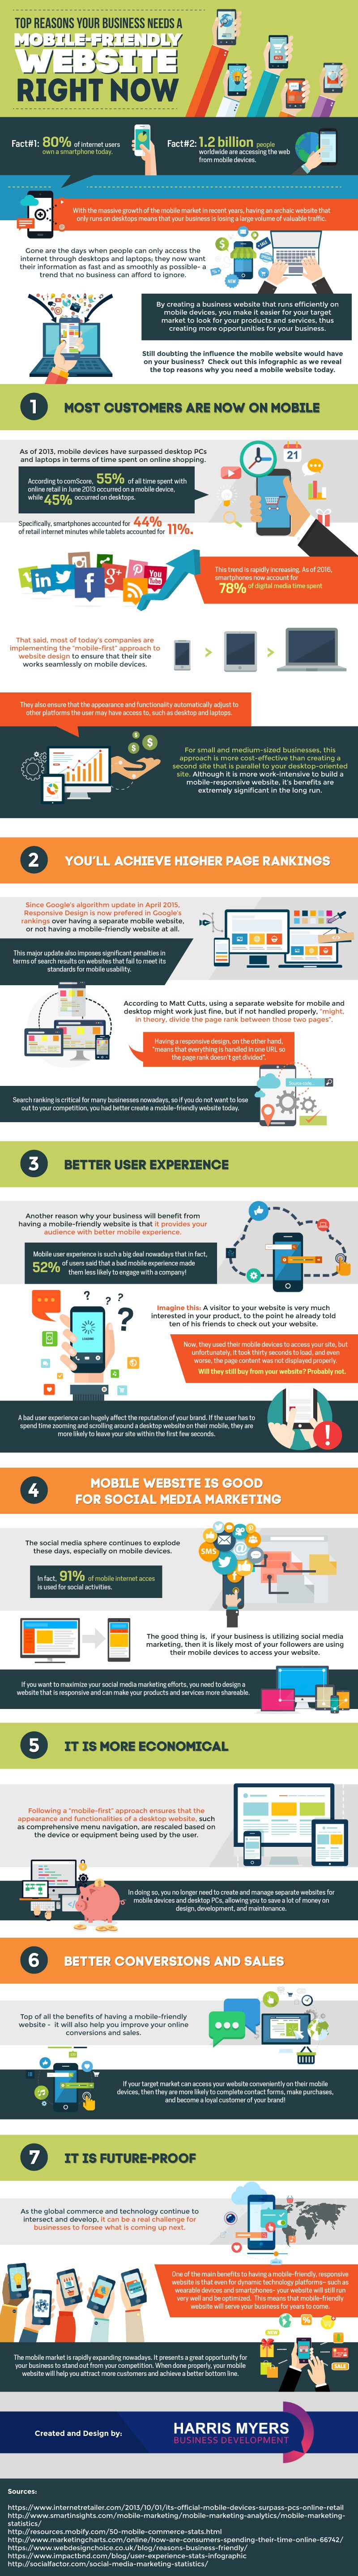 7 great reasons why your business needs a mobile friendly website!